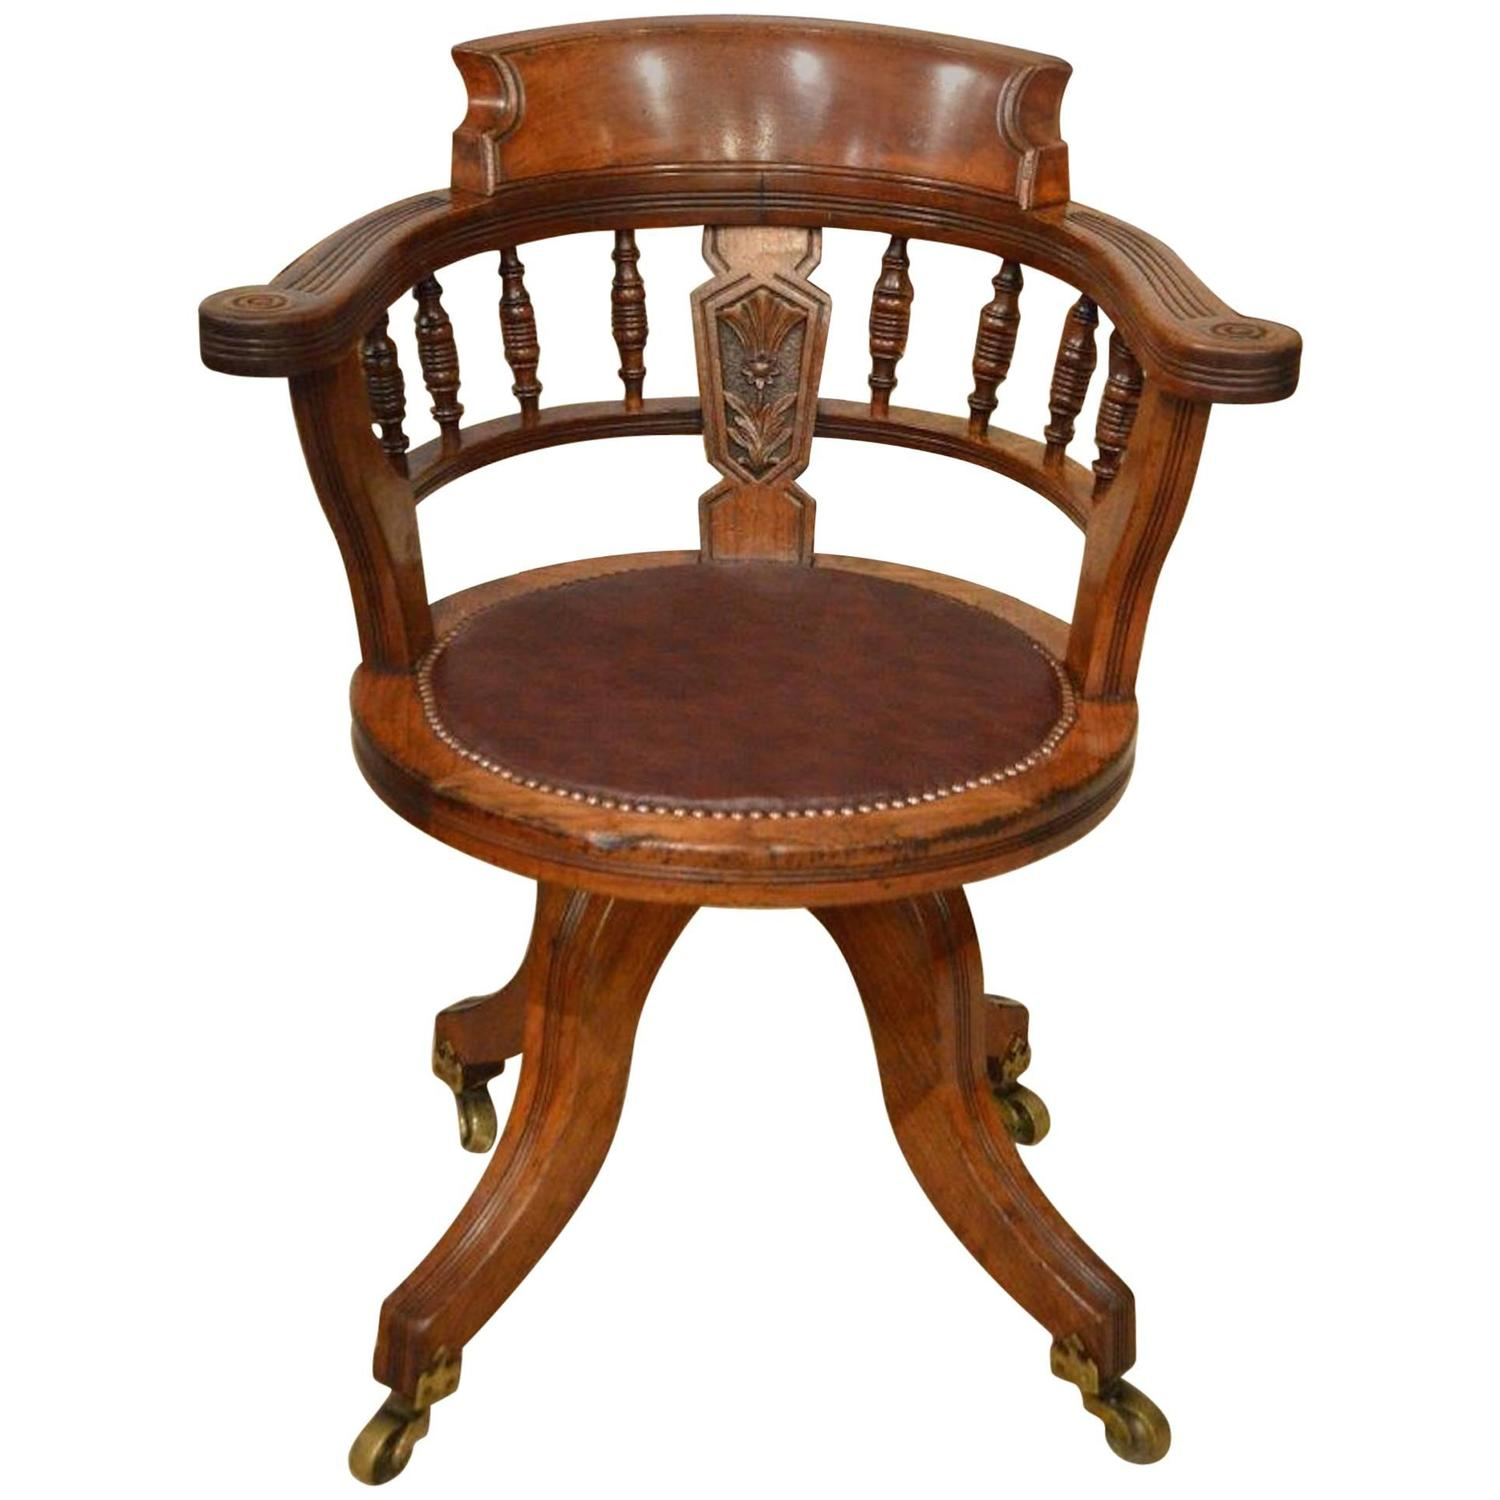 revolving desk chair acapulco uk walnut victorian period for sale at